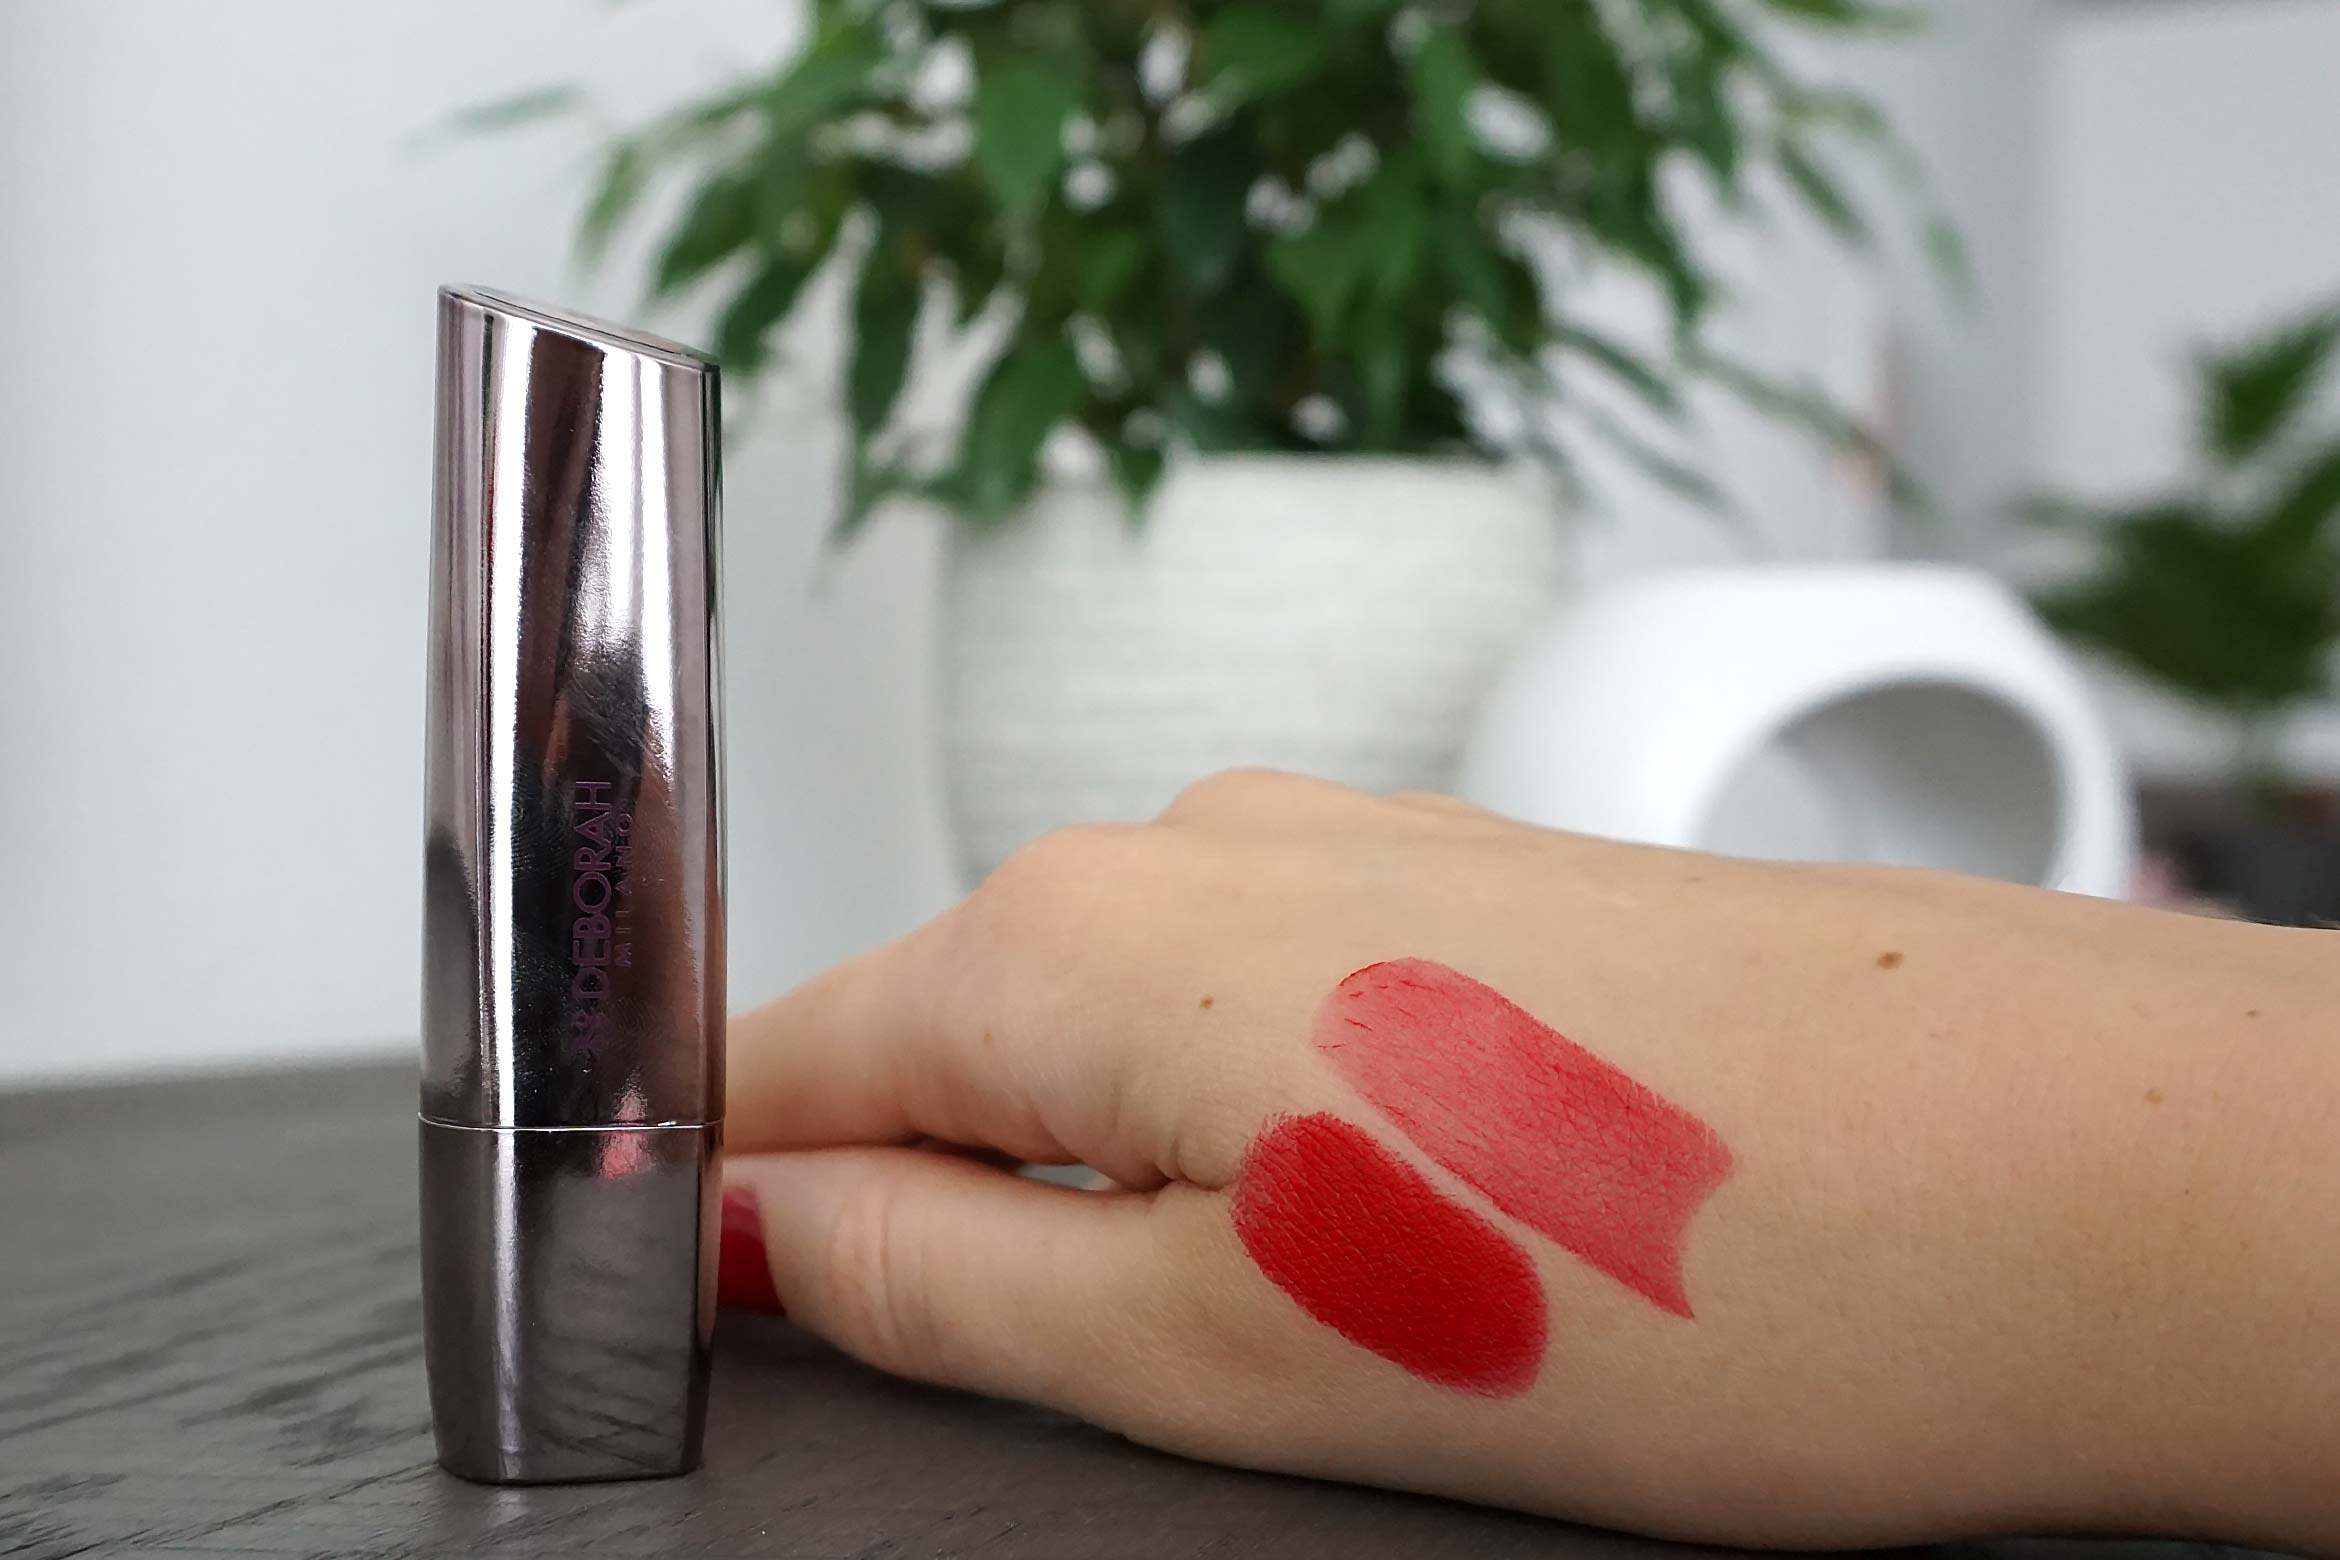 deborah milano red lipstick swatch 10 red kiss review